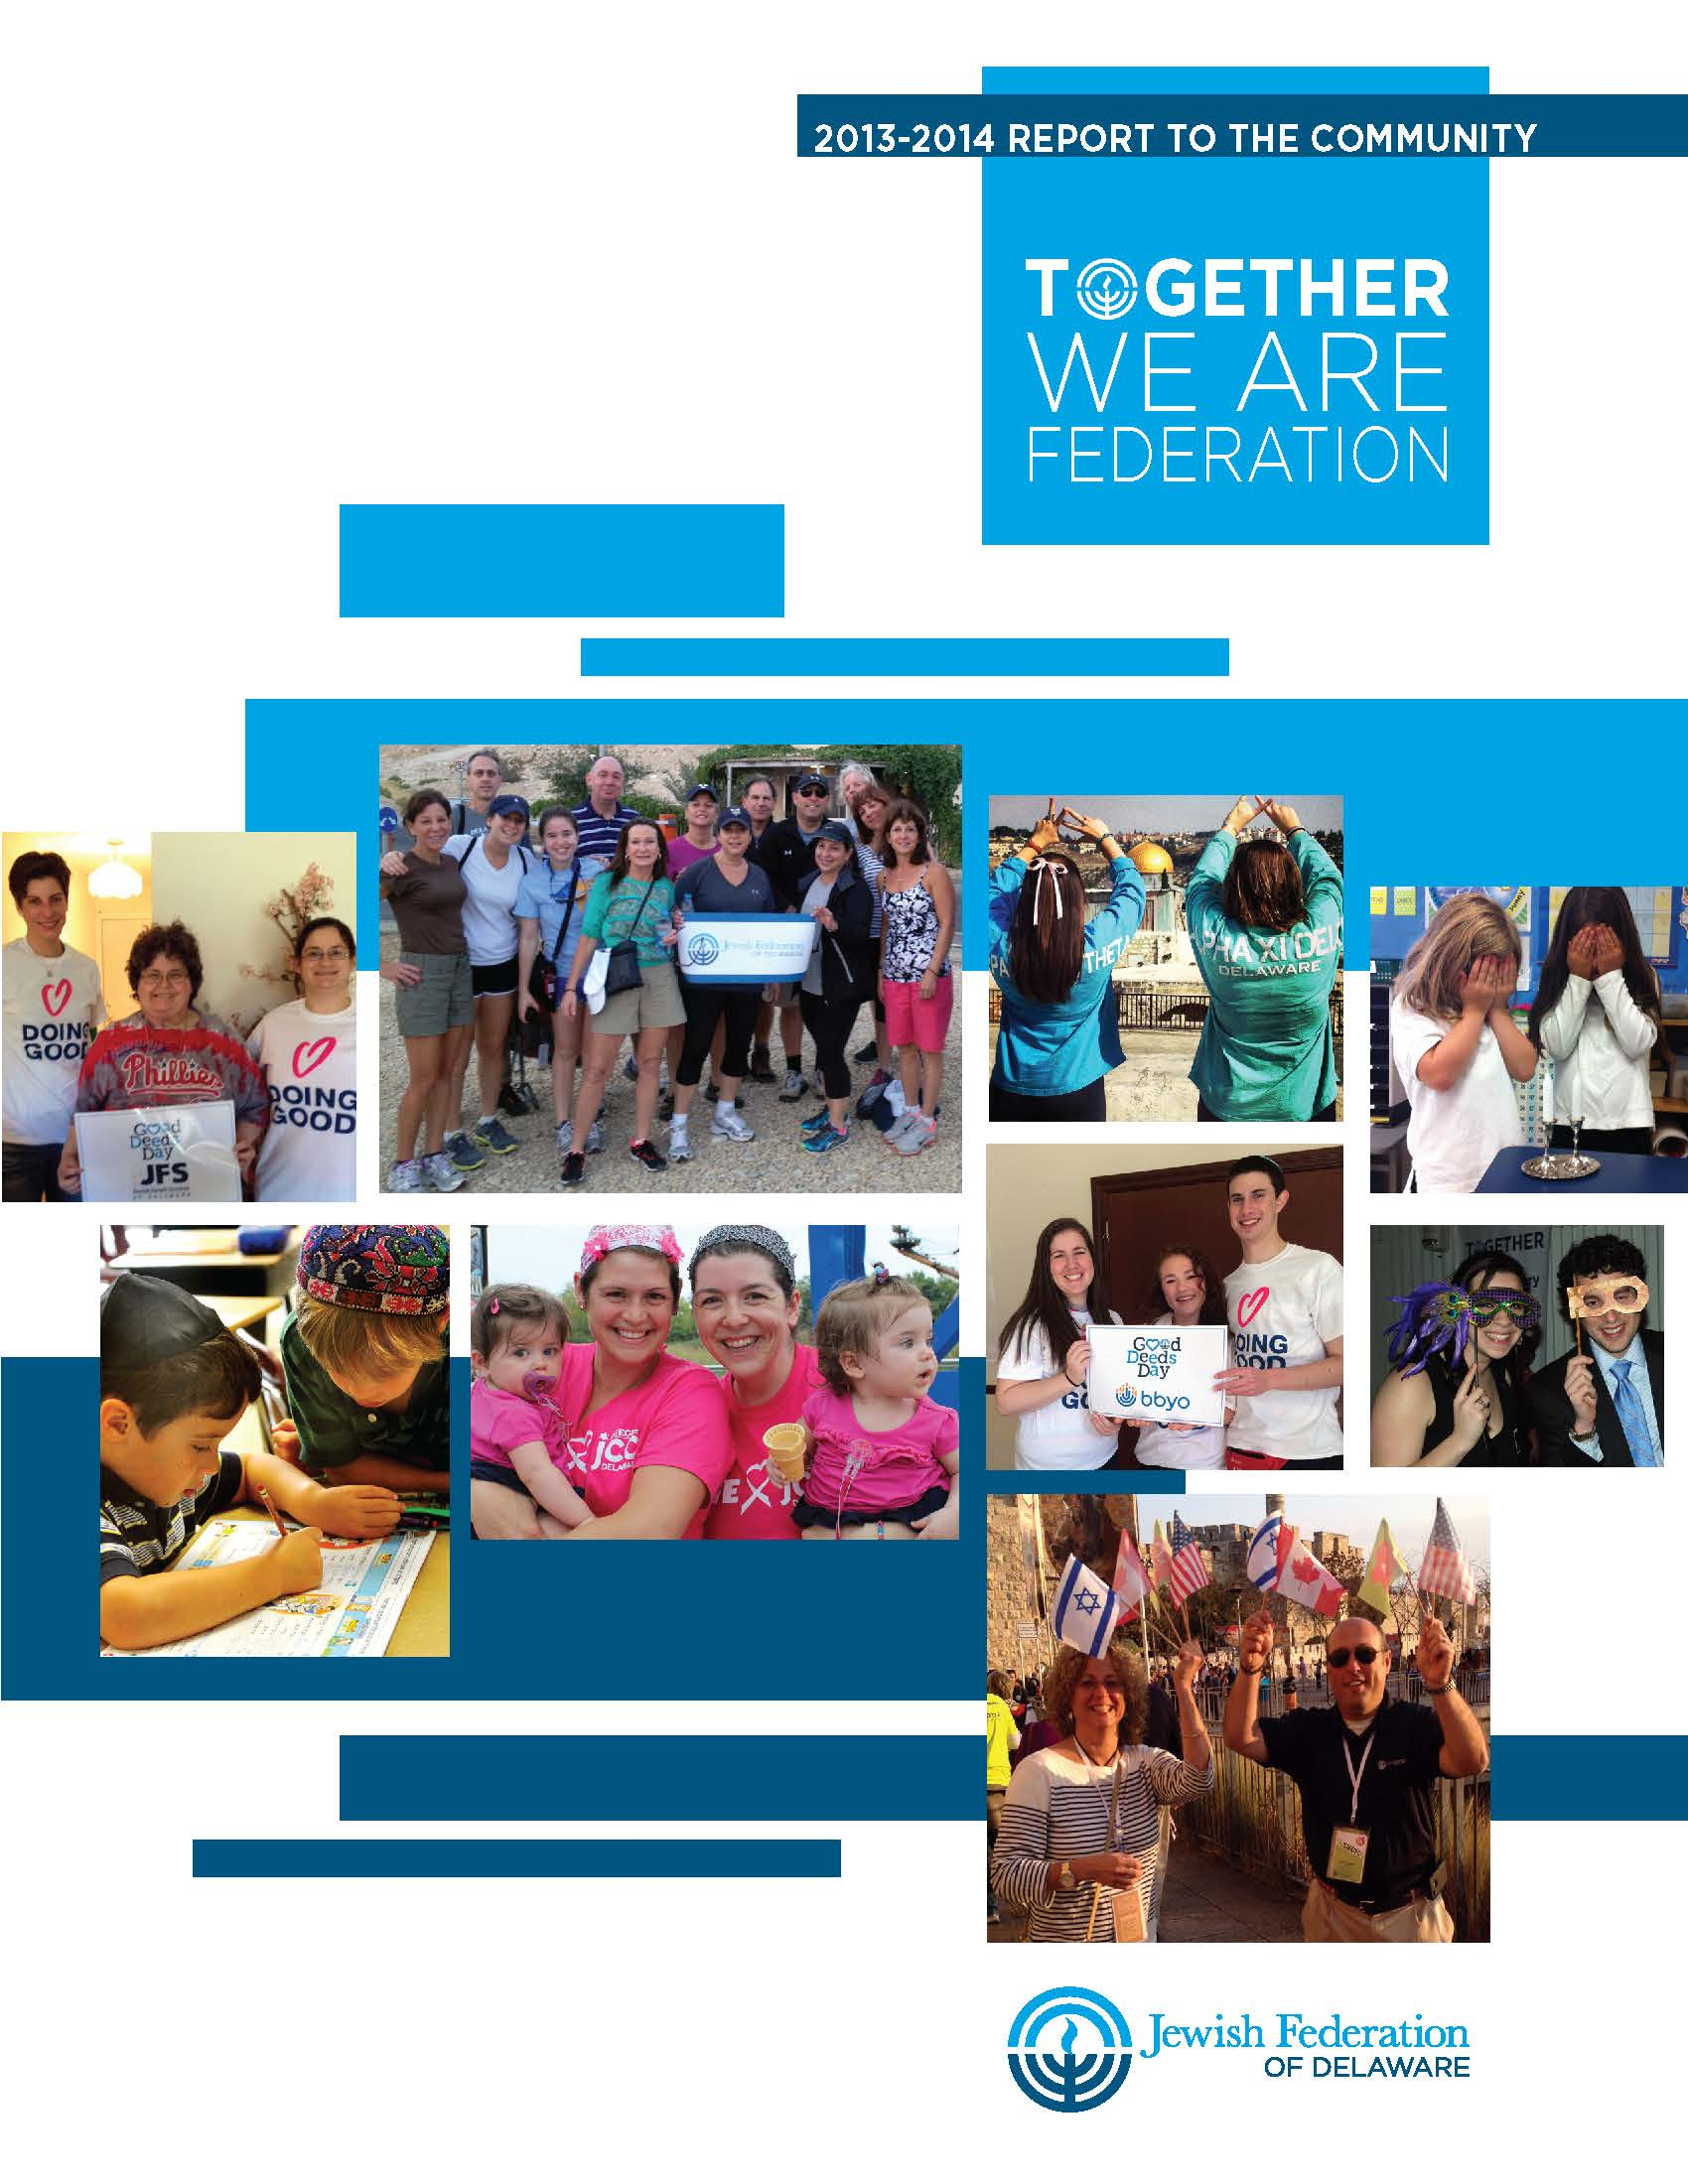 Click HERE to view the 2013-2014 Report to the Community